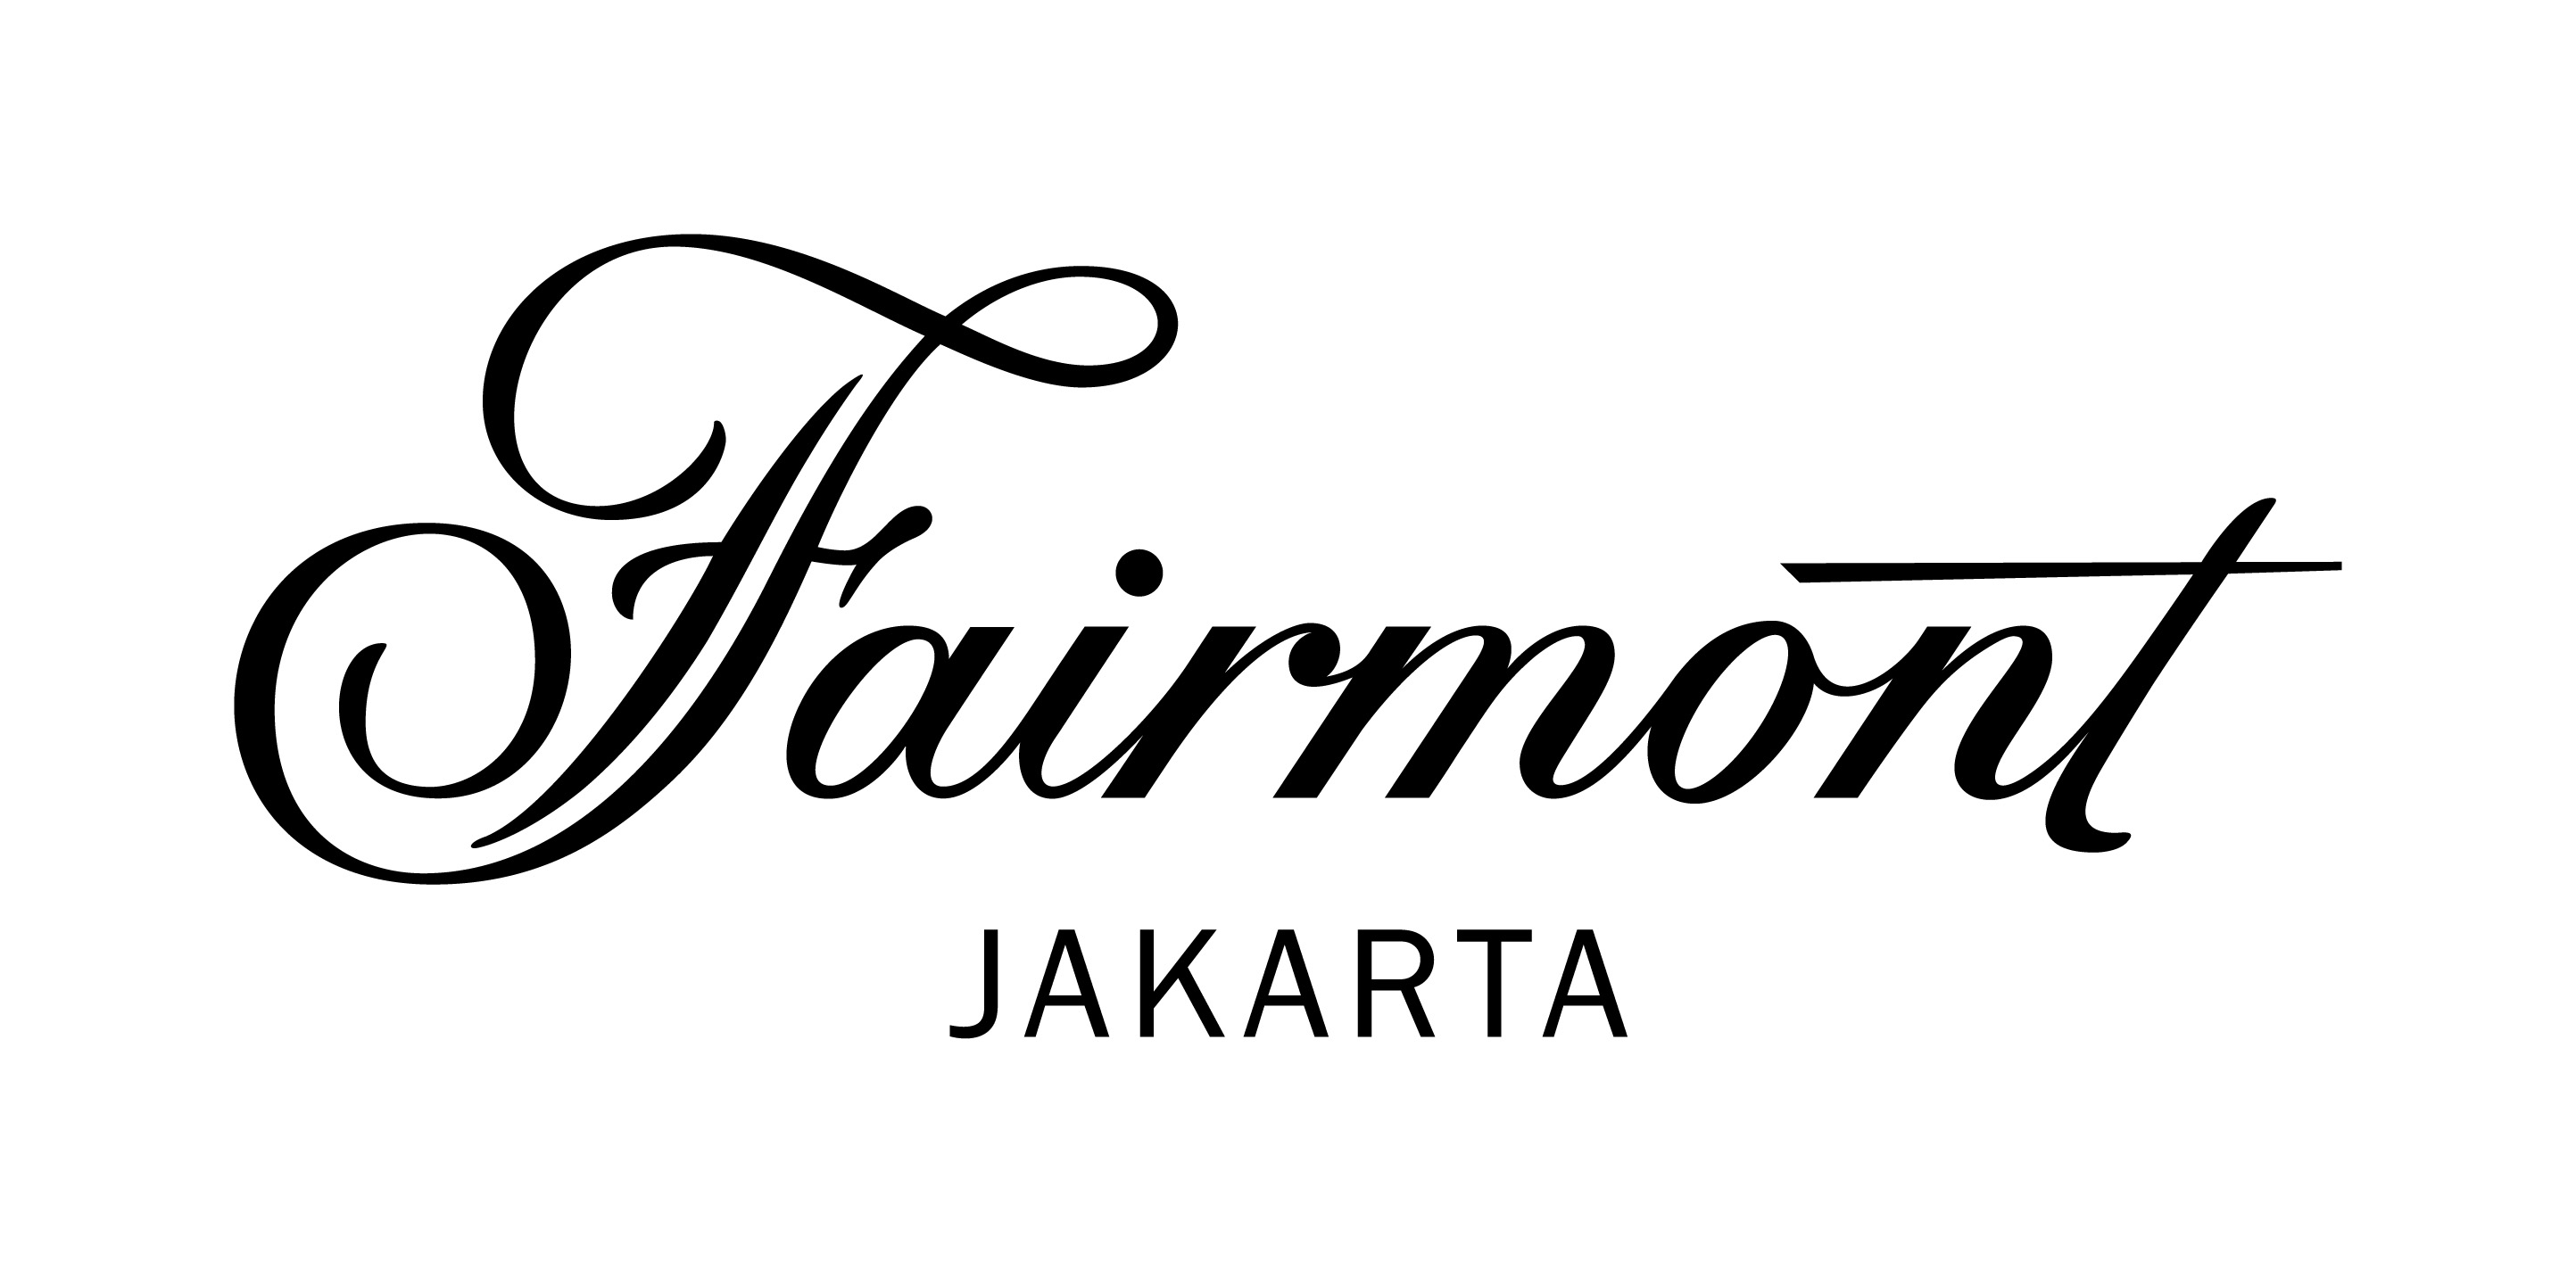 Meetings Events At Fairmont Jakarta Jakarta Indonesia Conference Hotel Group